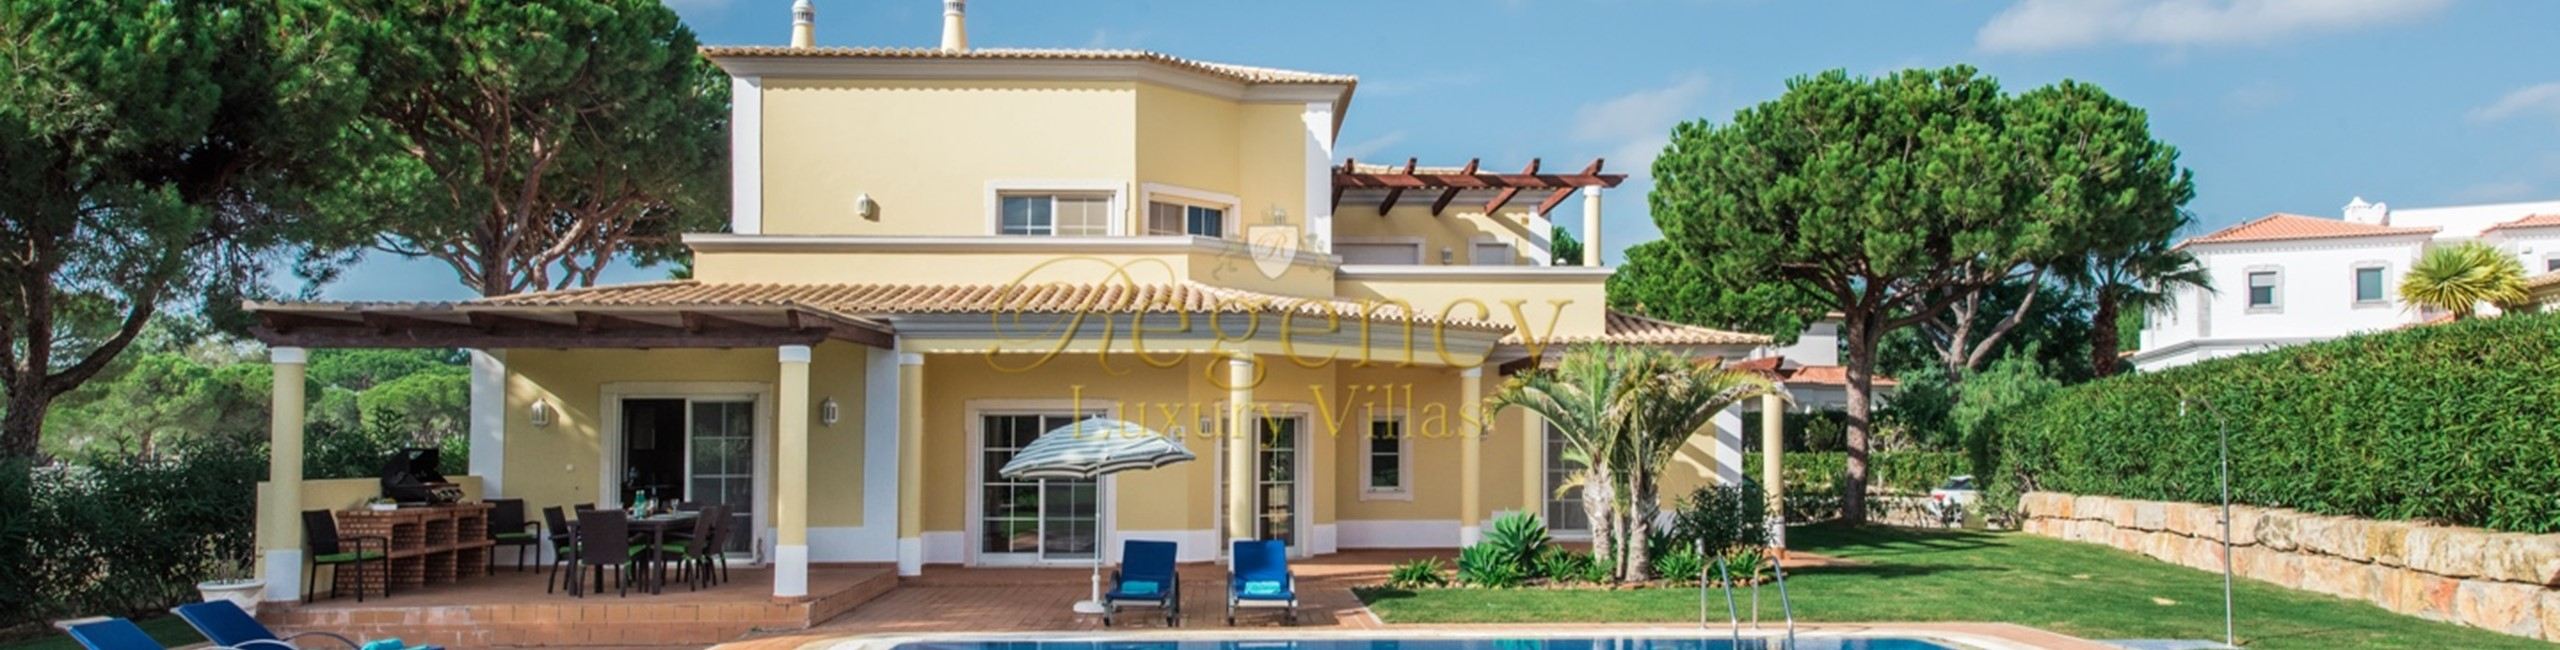 Holiday Villa To Rent Vilamoura Algarve Portugal